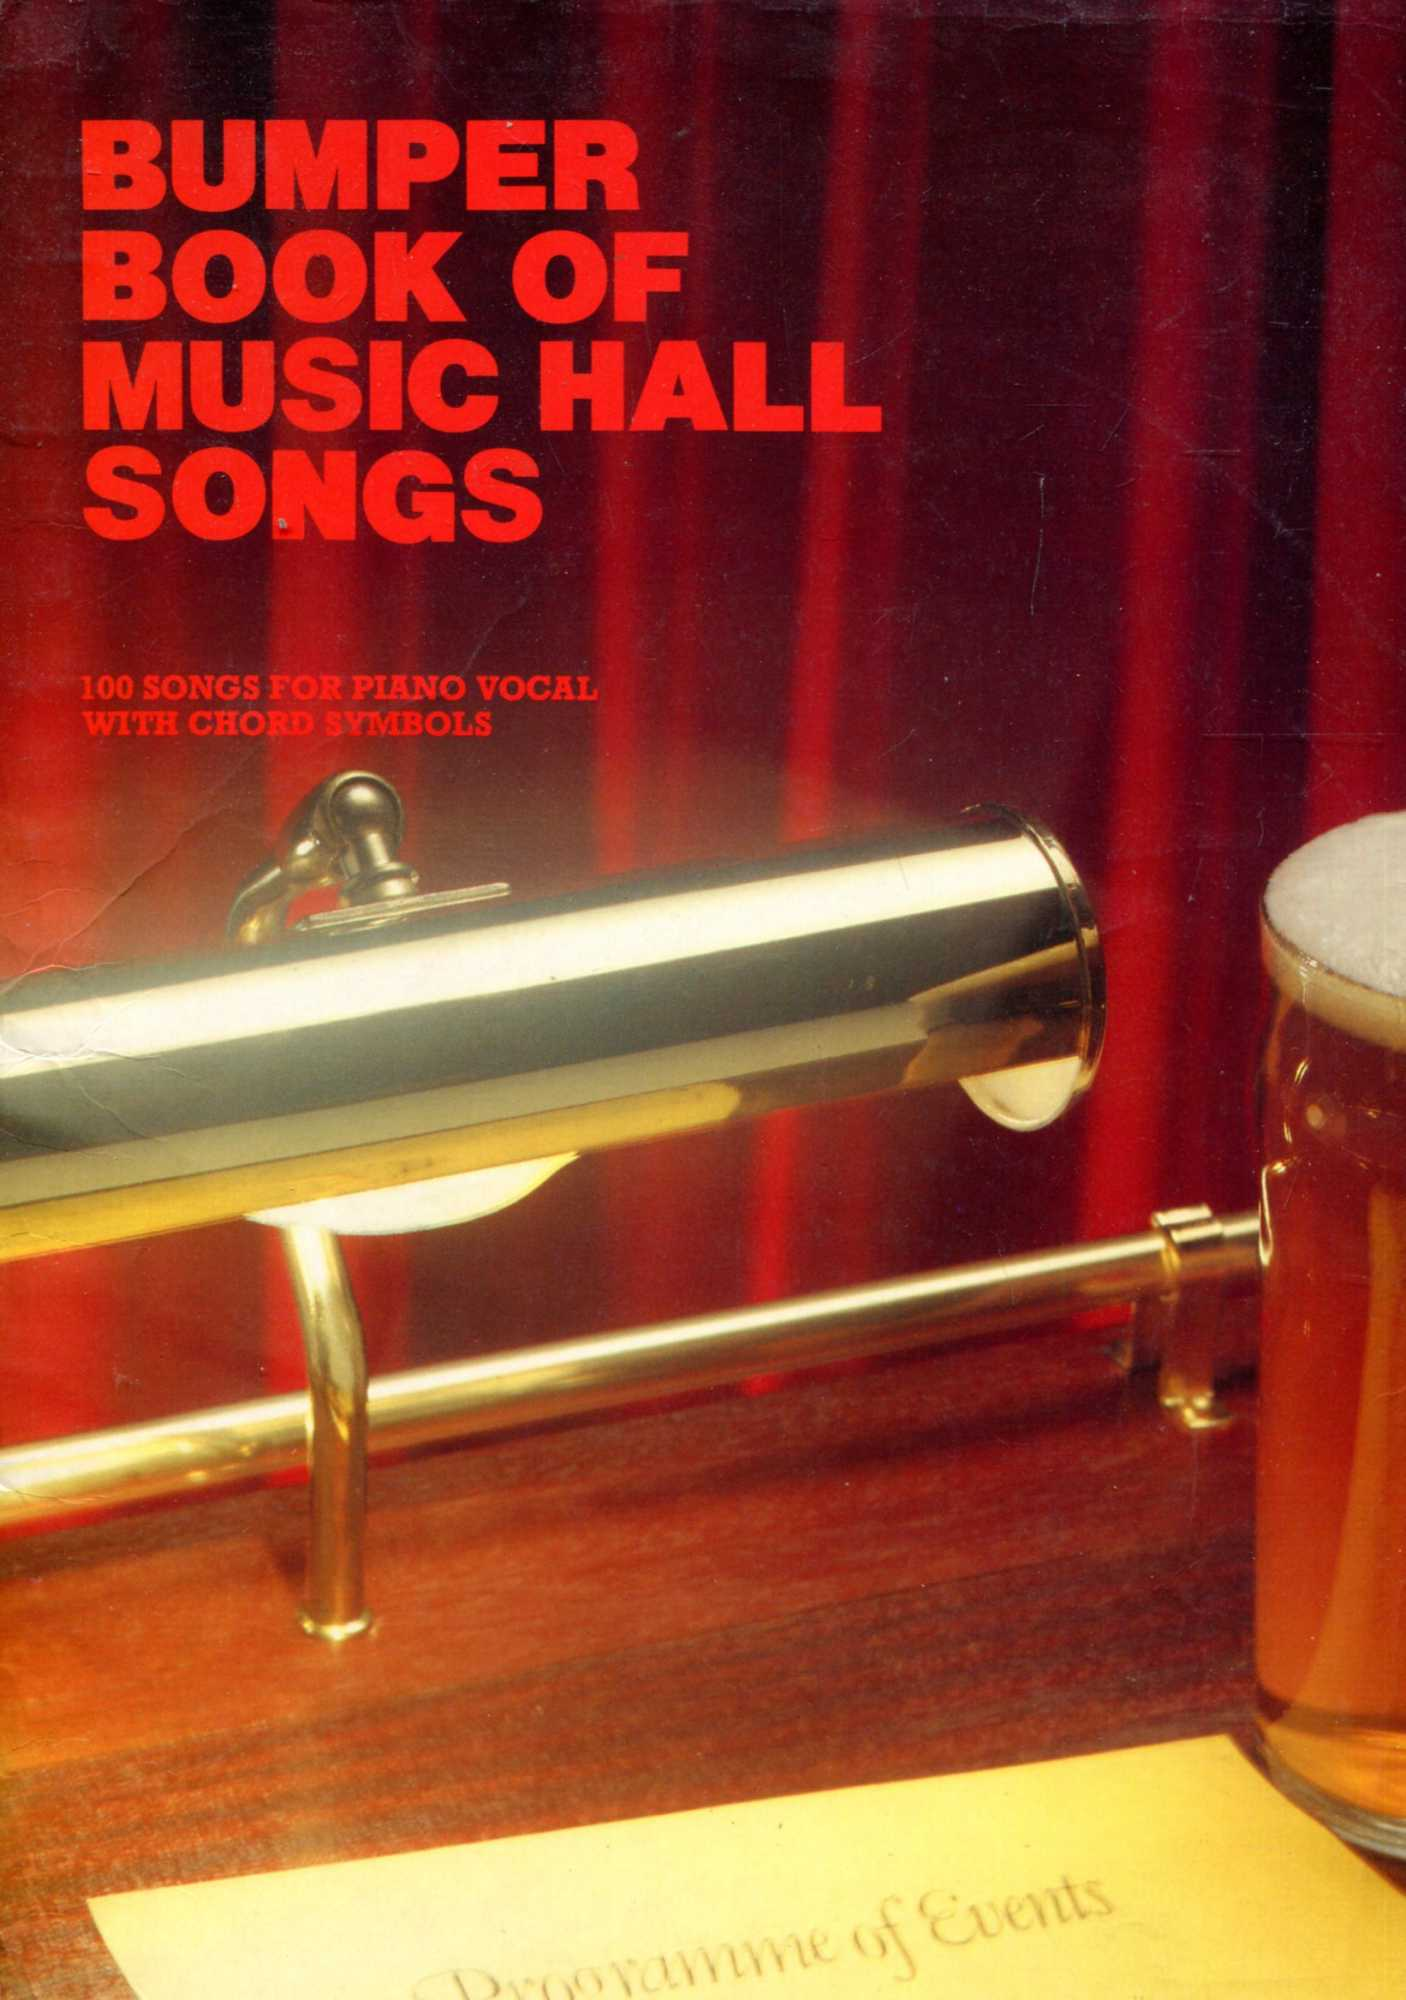 Image for Bumper Book of Music Hall Songs: 100 Songs for Piano Vocal with Chords